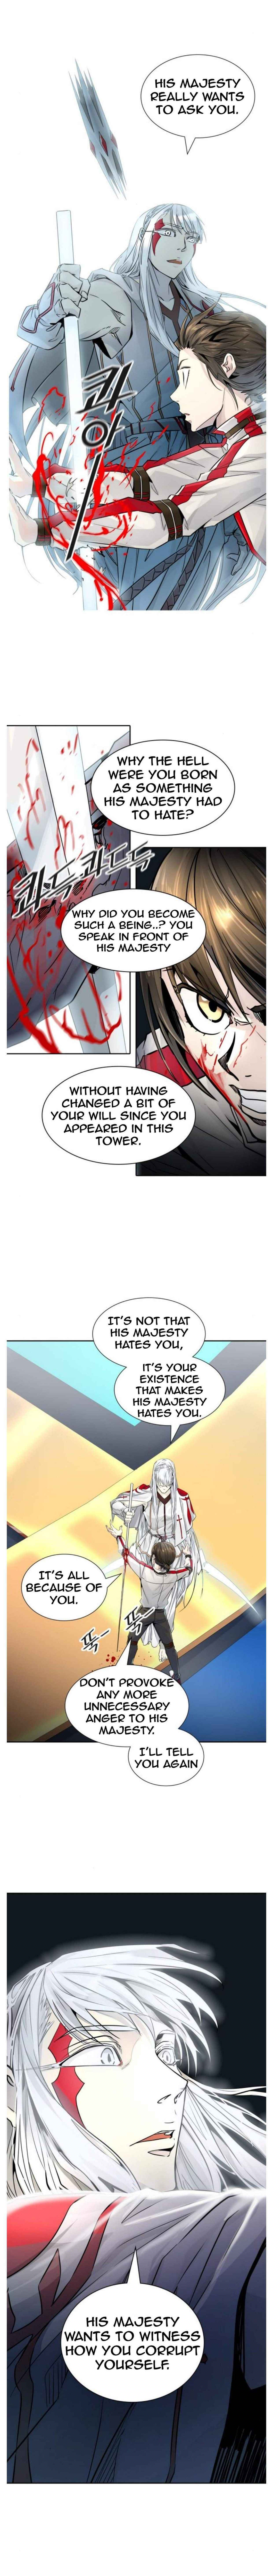 tower of god: Chapter 496 - Page 27